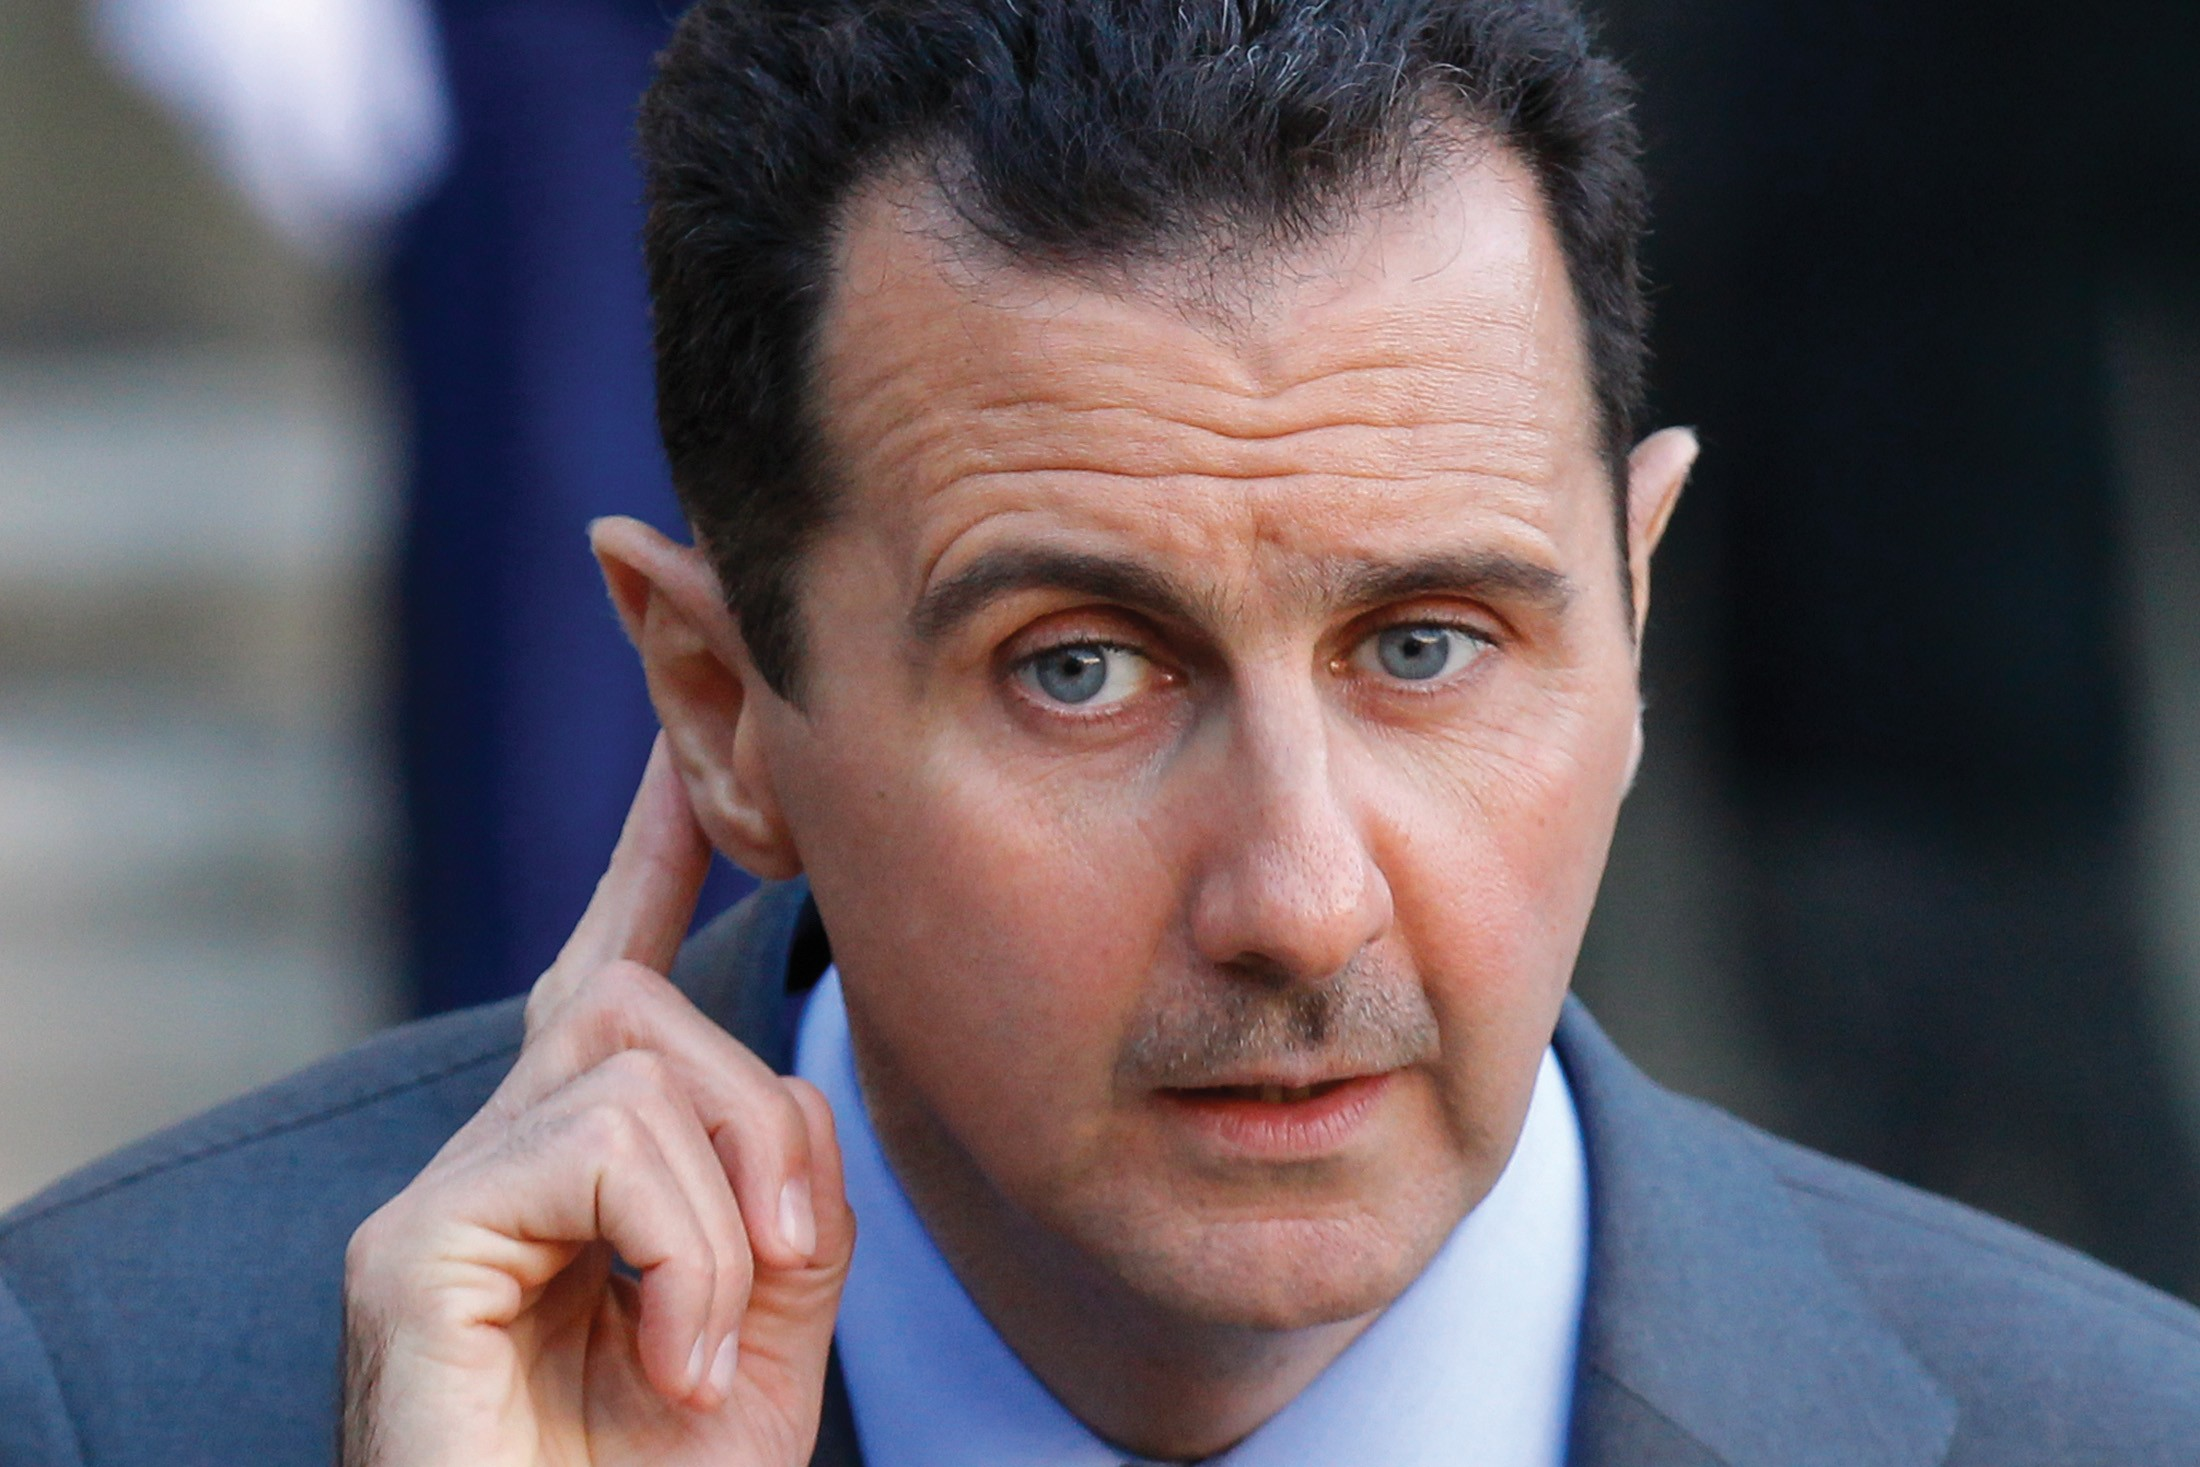 German Intelligence Agency links Assad with Chemical Attack using Phone Reference